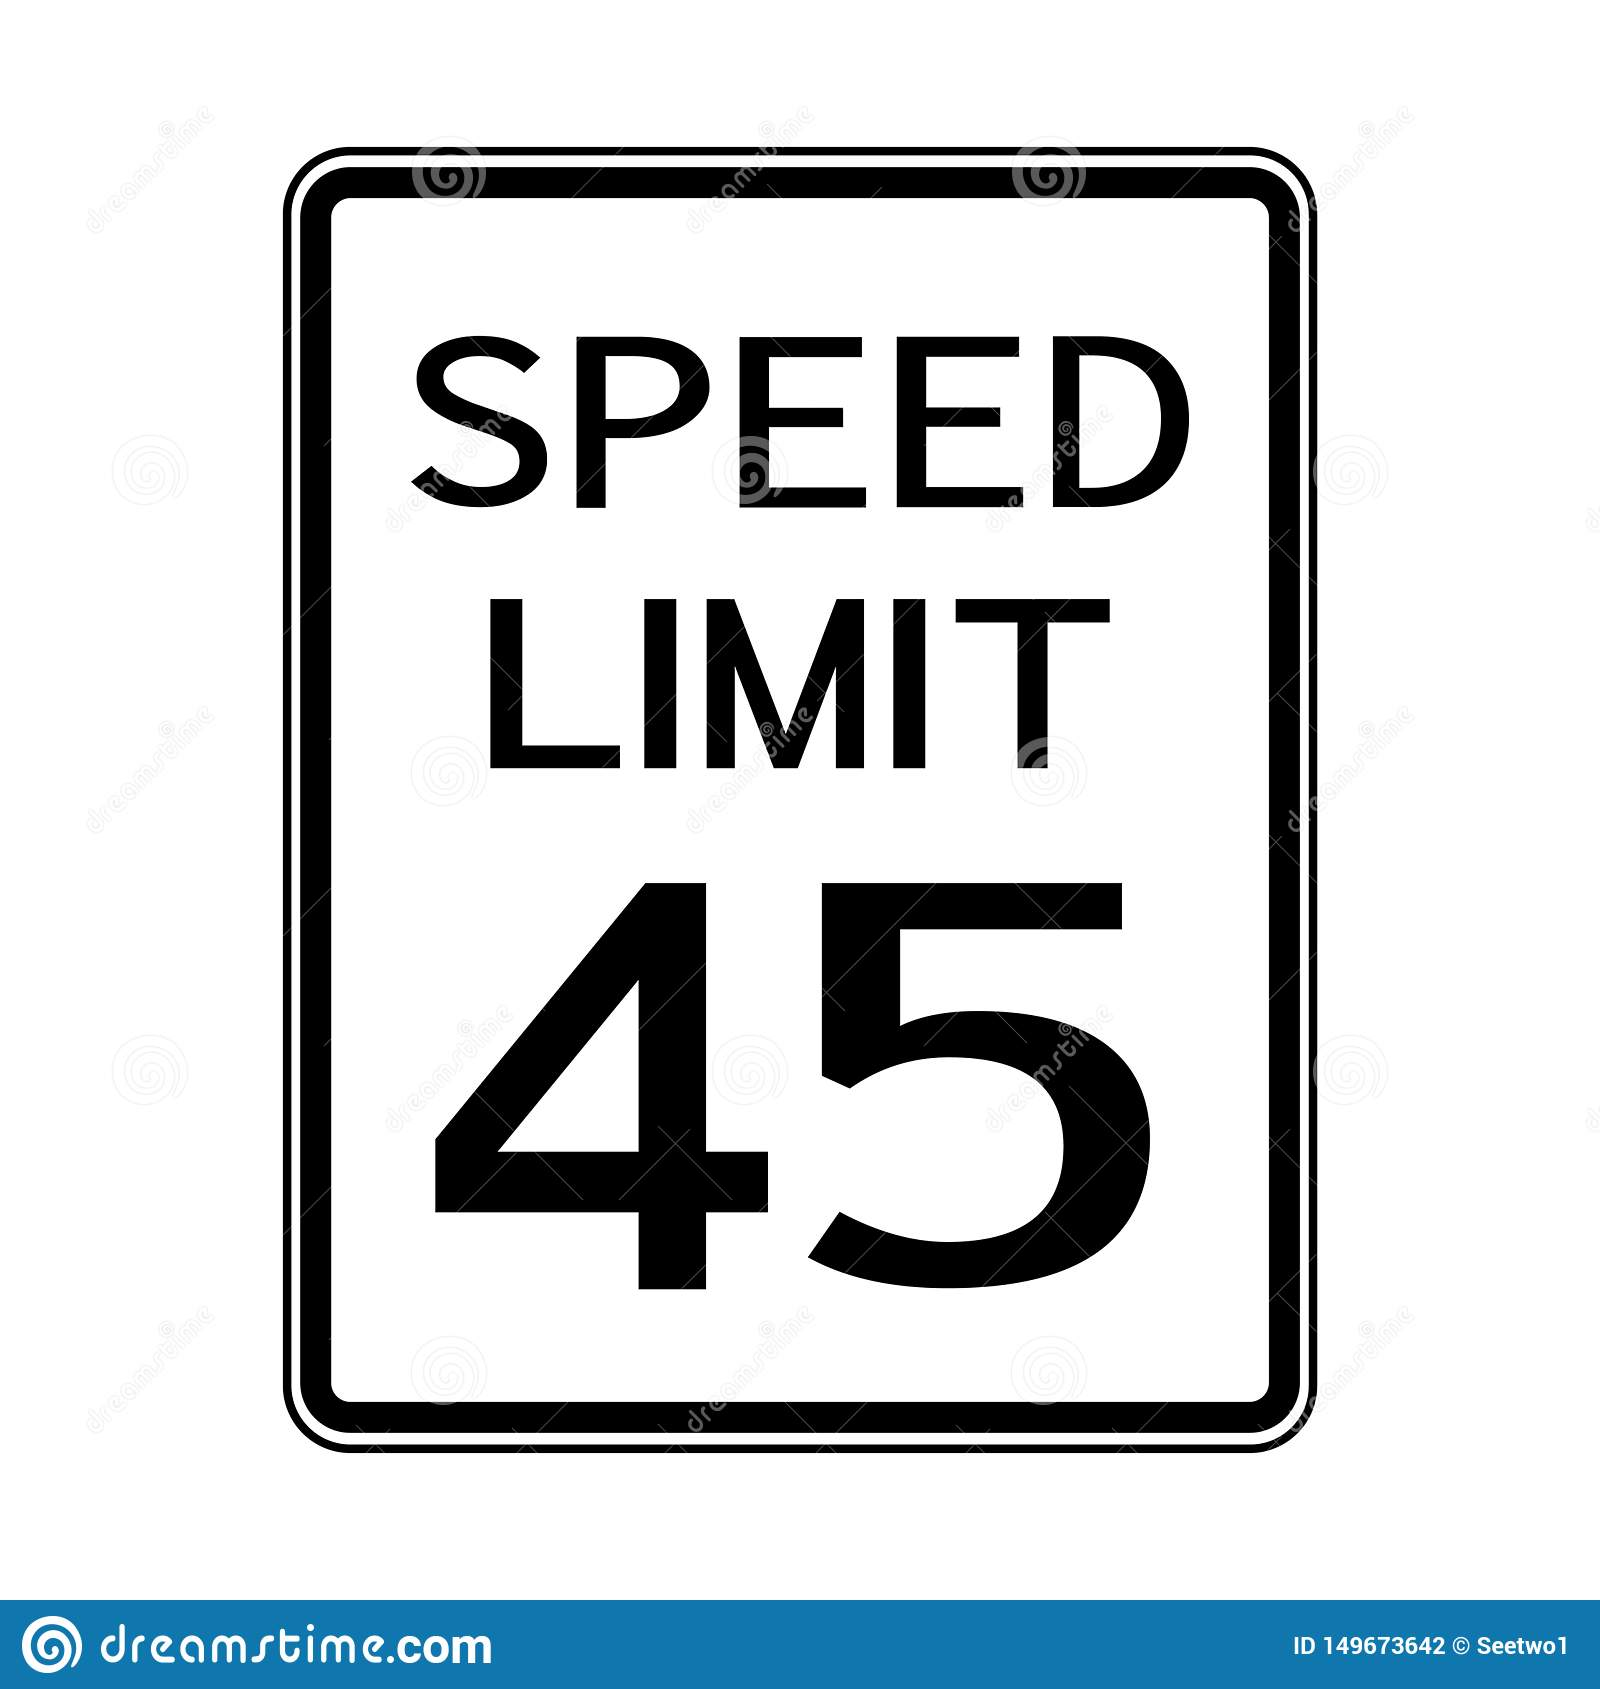 Sign And Drive 45 >> Usa Road Traffic Transportation Sign Speed Limit 45 On